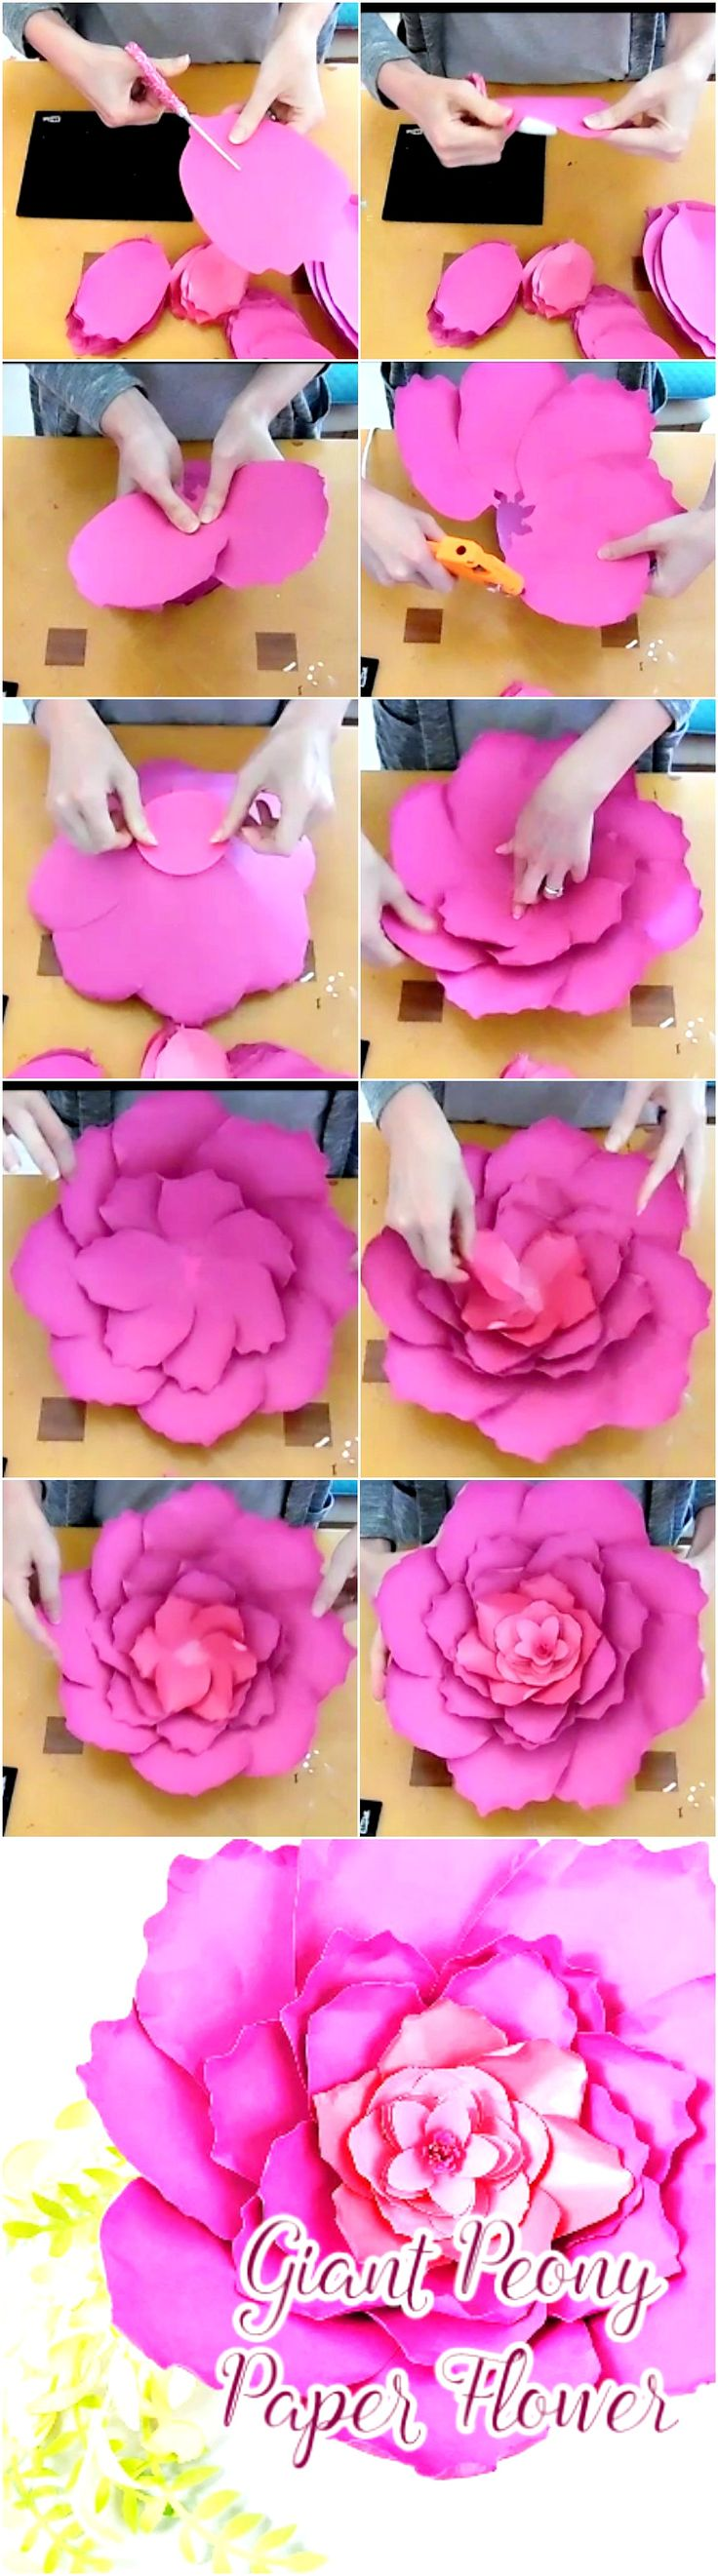 Best 25 paper flowers diy ideas on pinterest diy wall flowers giant paper peony templates dhlflorist Choice Image